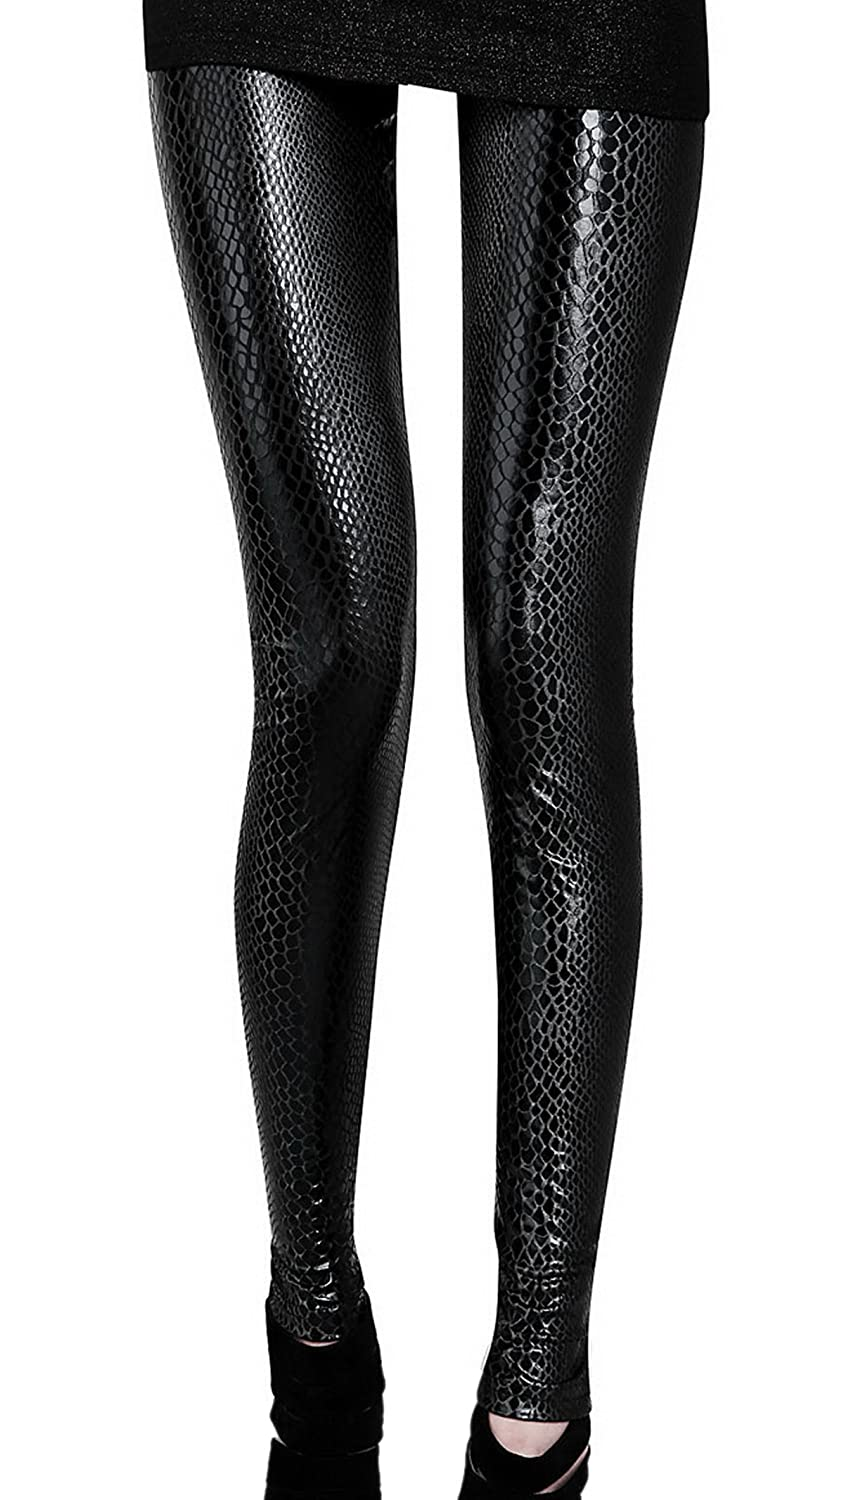 fb3fabe0d28fea Stretchy, Full-Length, Ankle-pleated and Comfortable Slim Fit Leggings.  Flexible, stretchy polyester leggings for ladies ...